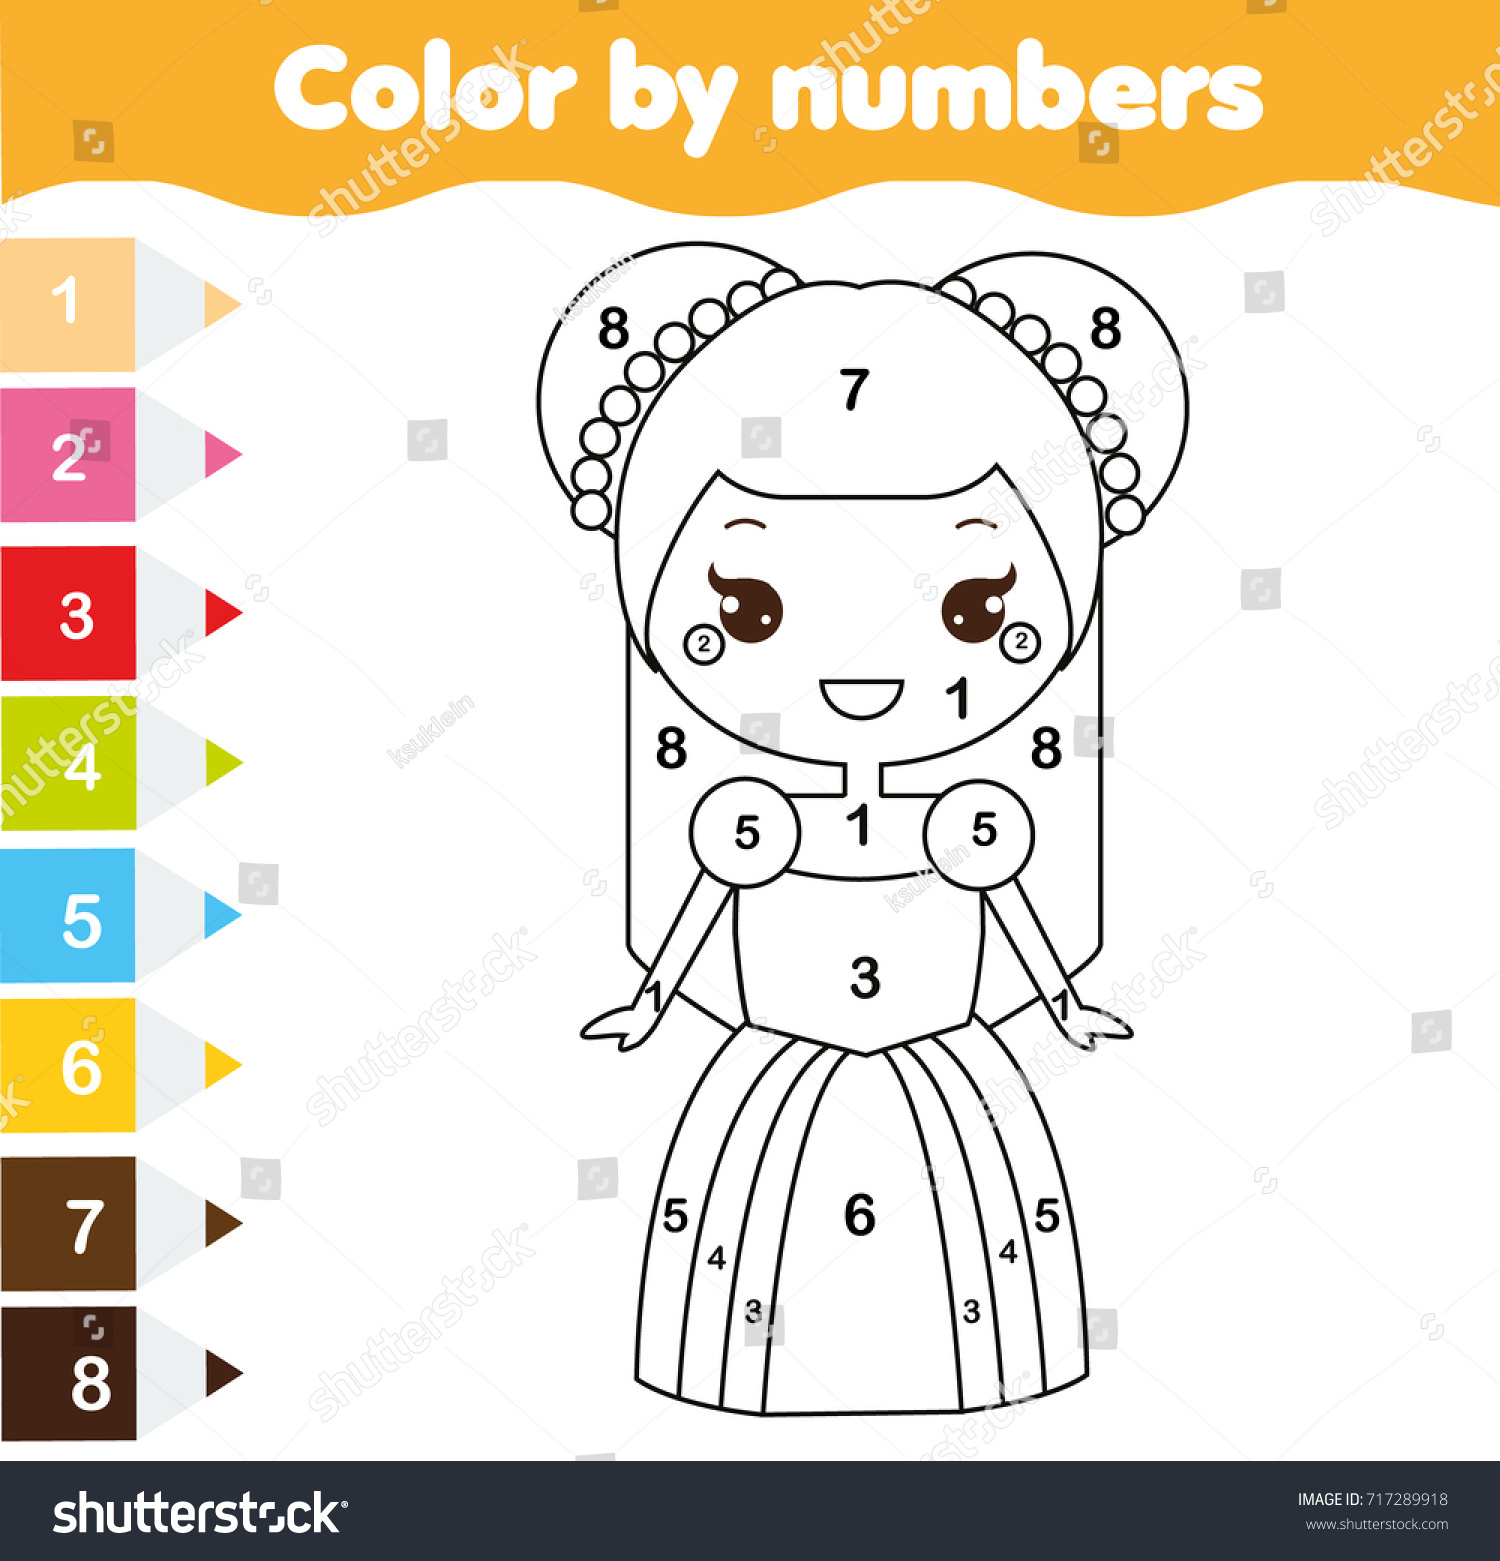 Color By Numbers Educational Children Game Stock Vector